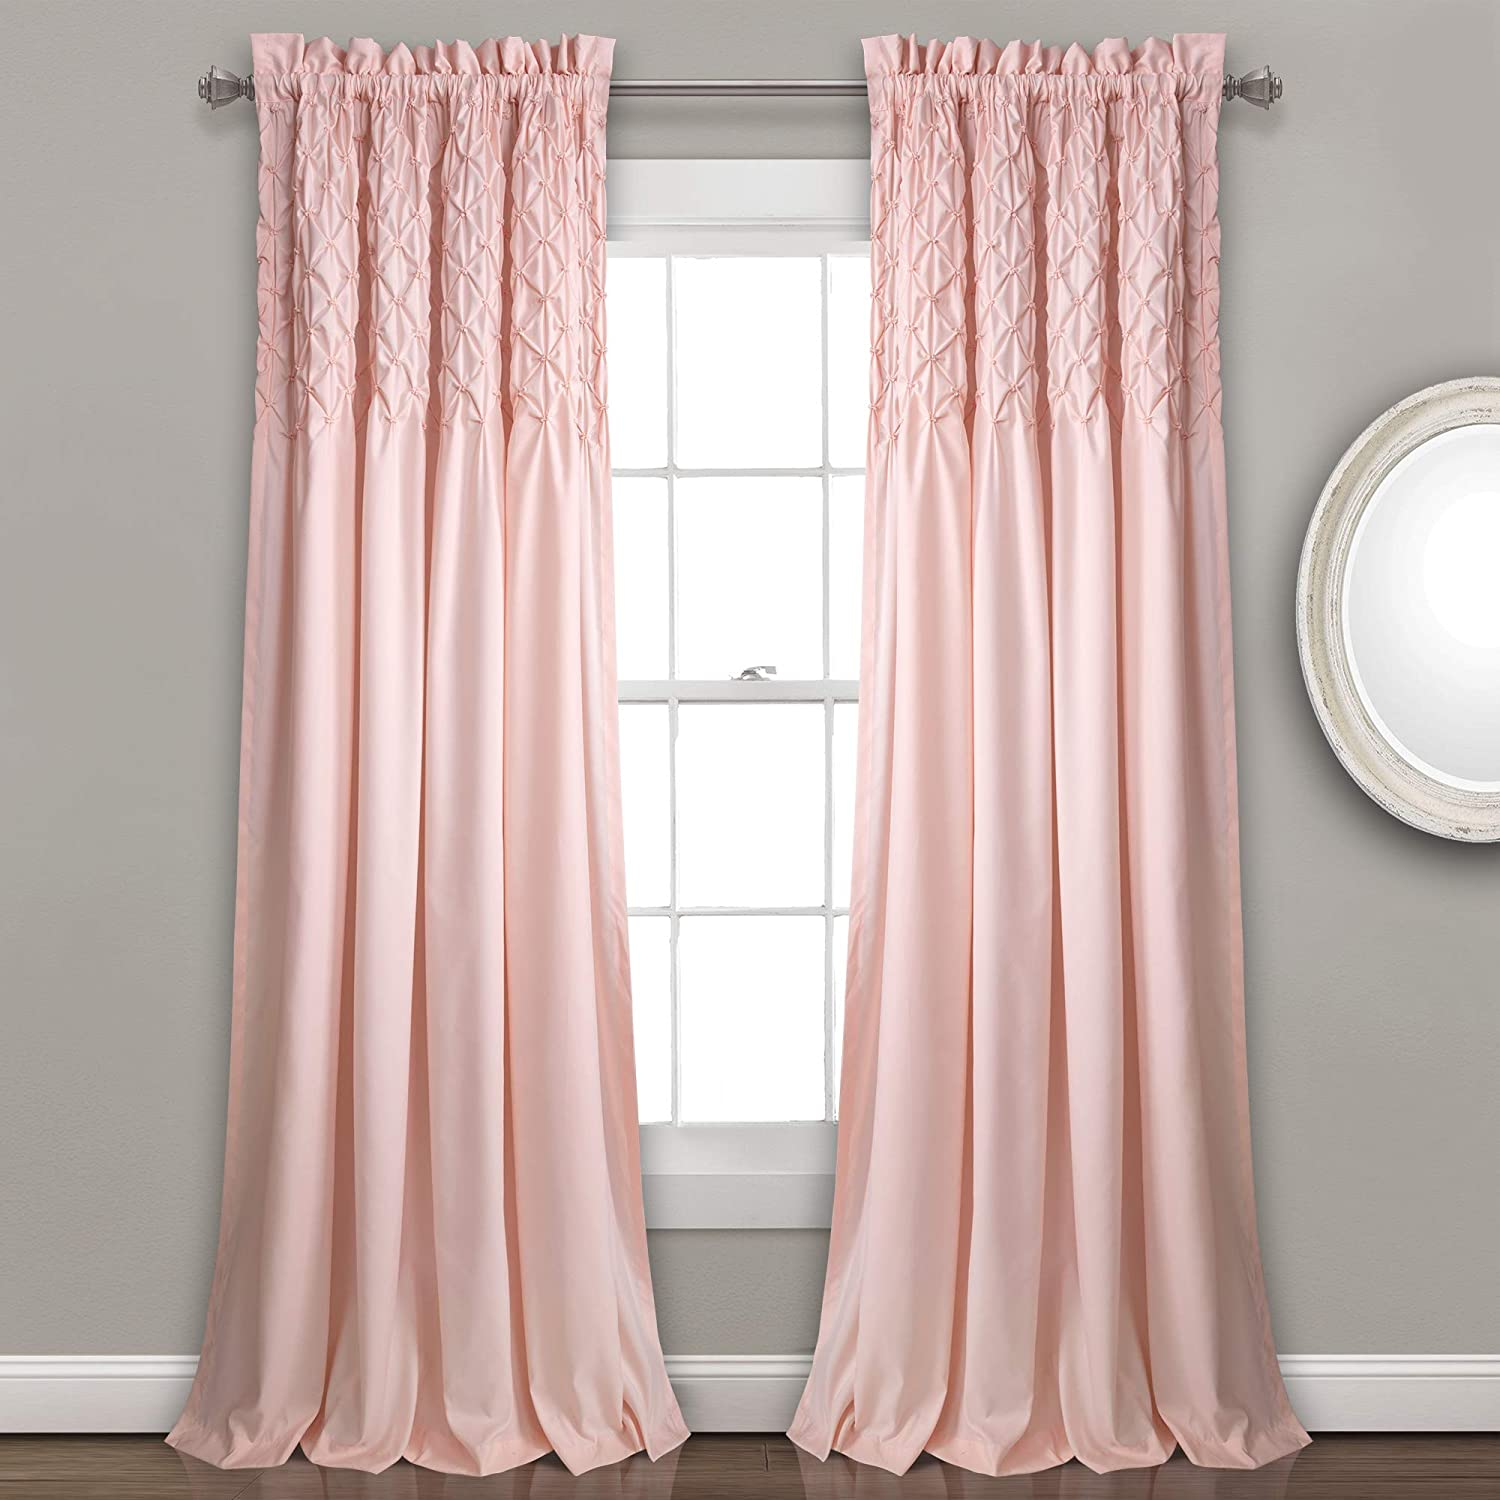 "Lush Decor Bayview Curtains - Pintuck Textured Semi Sheer Window Panel Drapes Set for Living, Dining, Bedroom (Pair), 84"" x 52"", Blush"